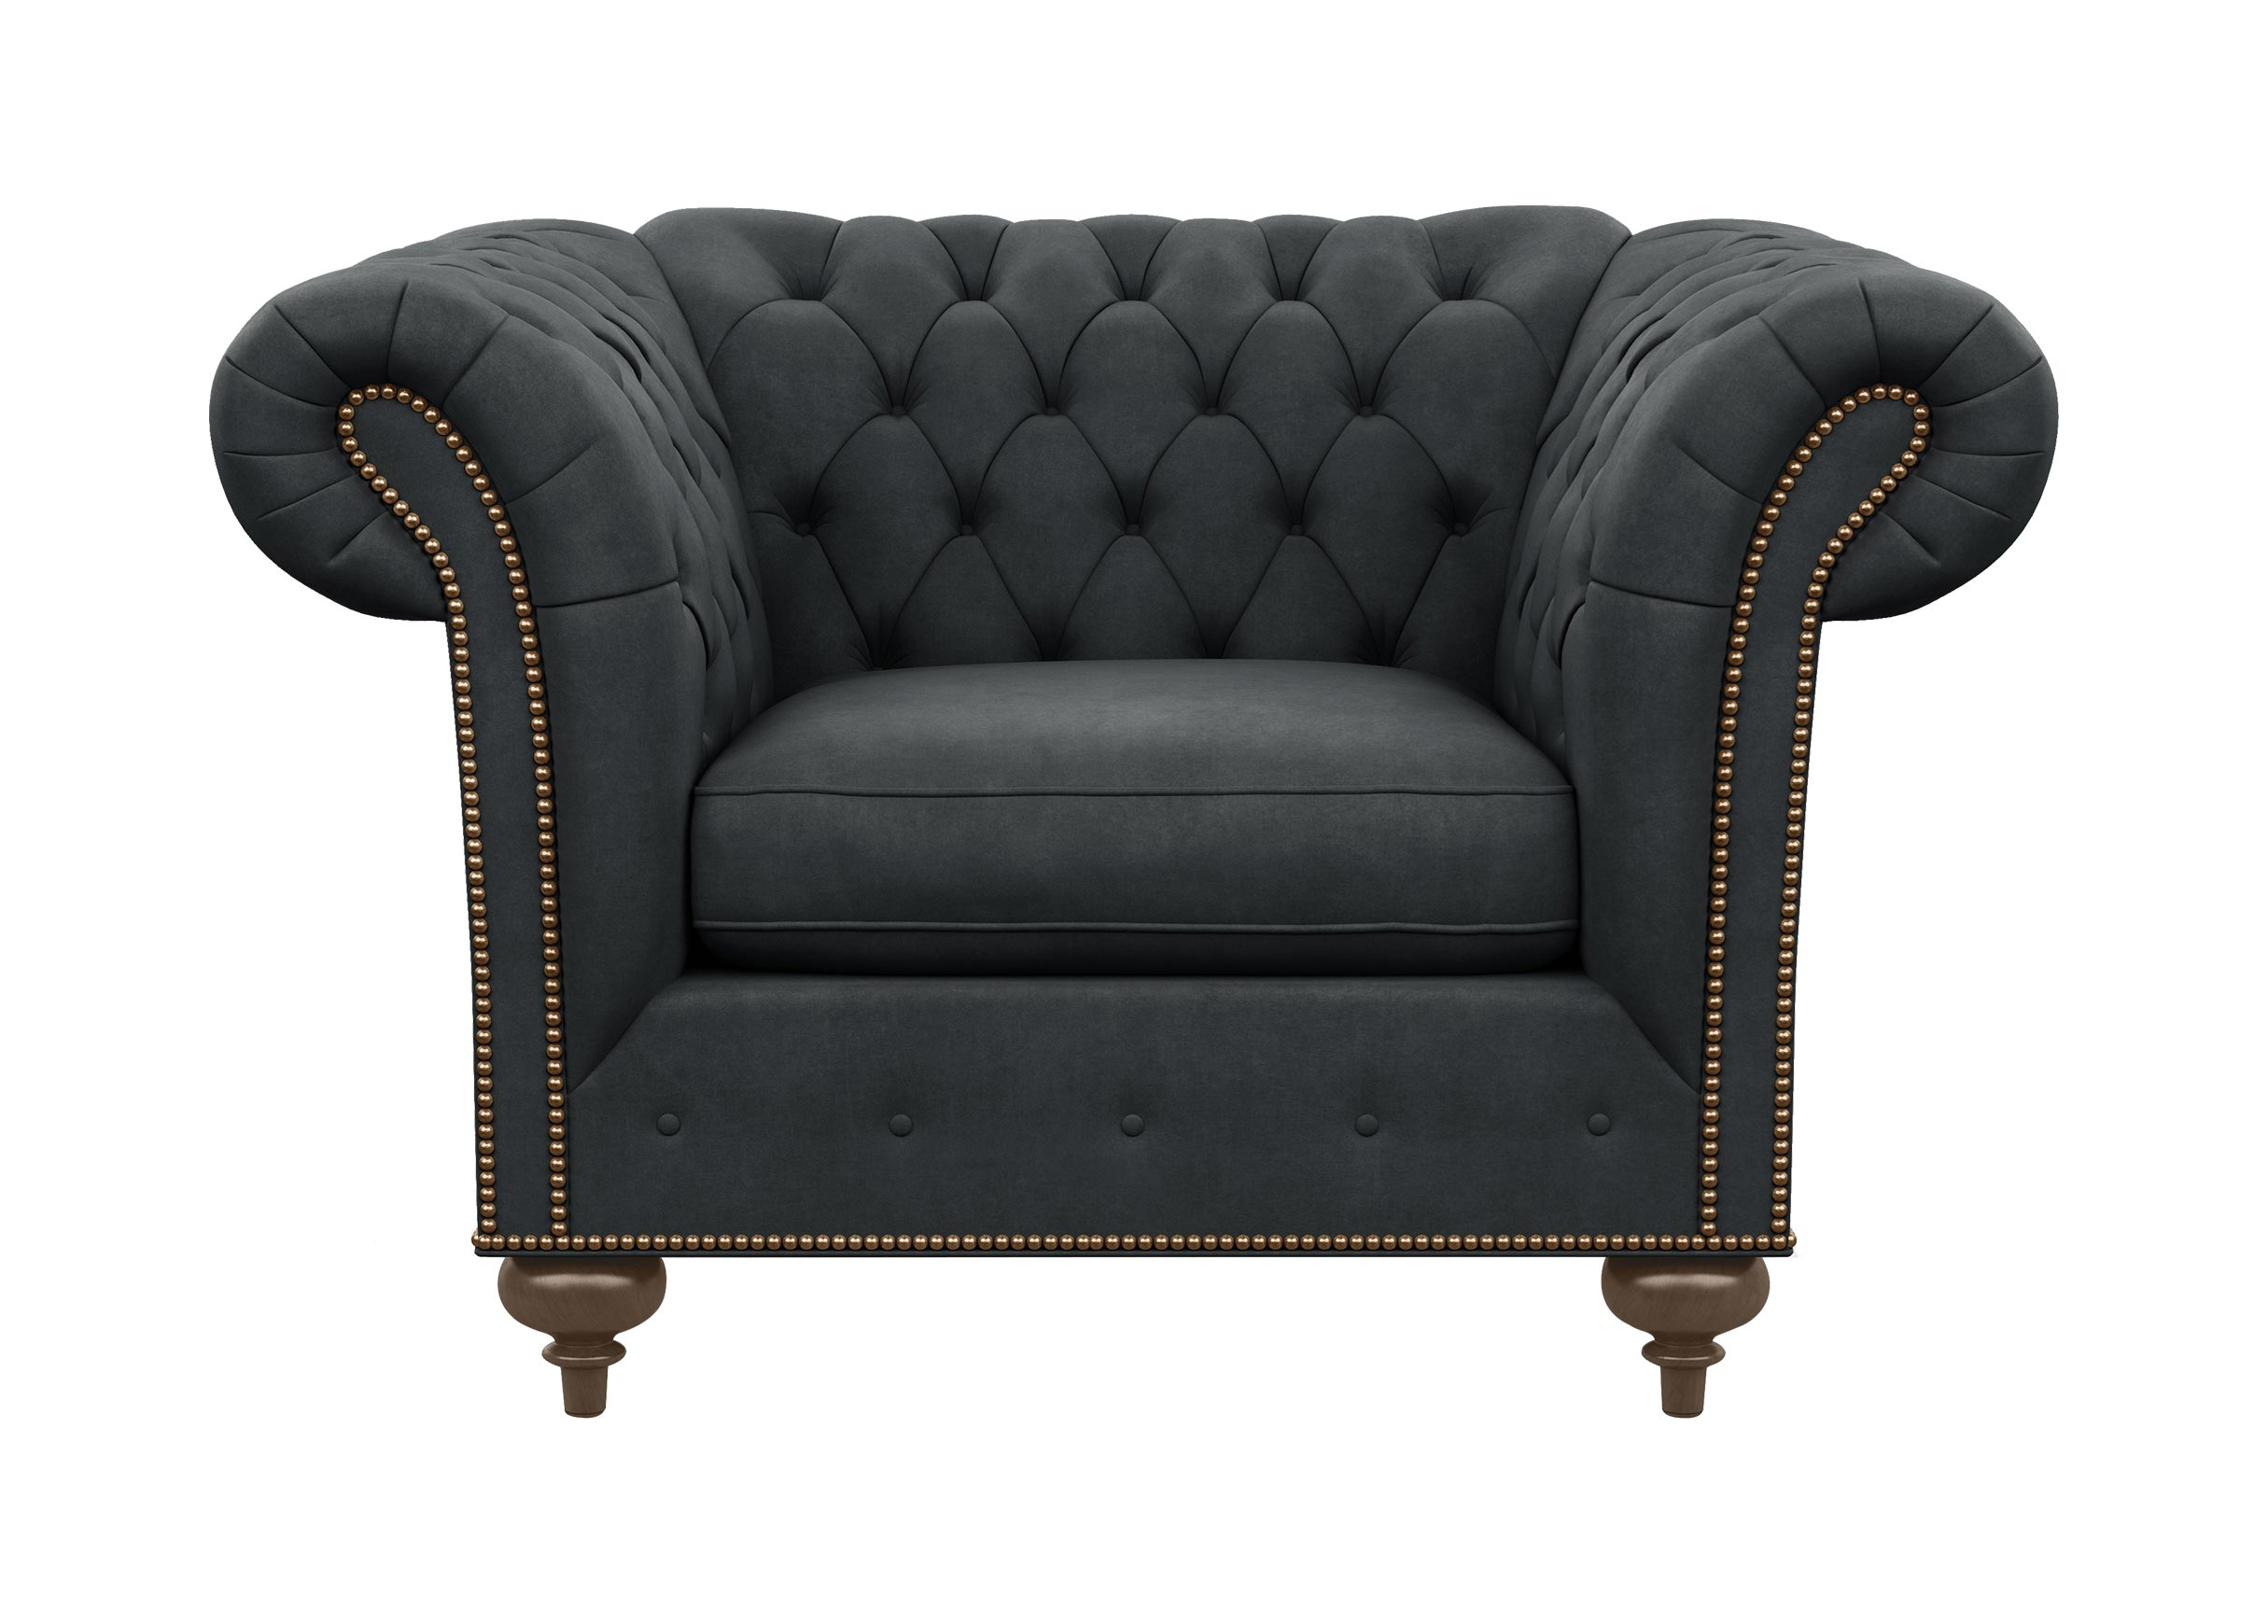 Mansfield Chair | Chairs & Chaises | Ethan Allen In Mansfield Graphite Velvet Sofa Chairs (View 18 of 20)